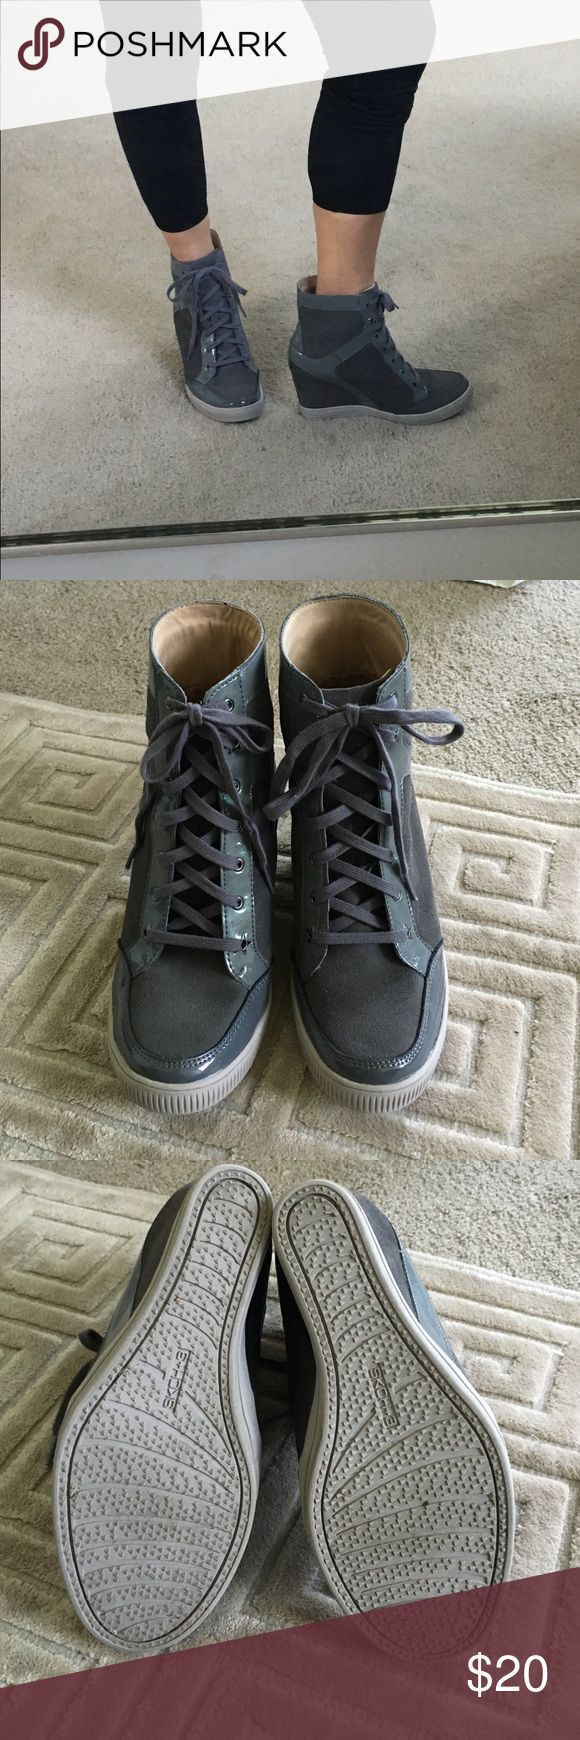 """Skecher  wedge tennis shoe Grey lace up . 4"""" heel . Suede and patent leather.  I am reposhing  too high incline for me . Great condition ! I never wore and previous owner must not of worn much . Skechers Shoes Wedges"""